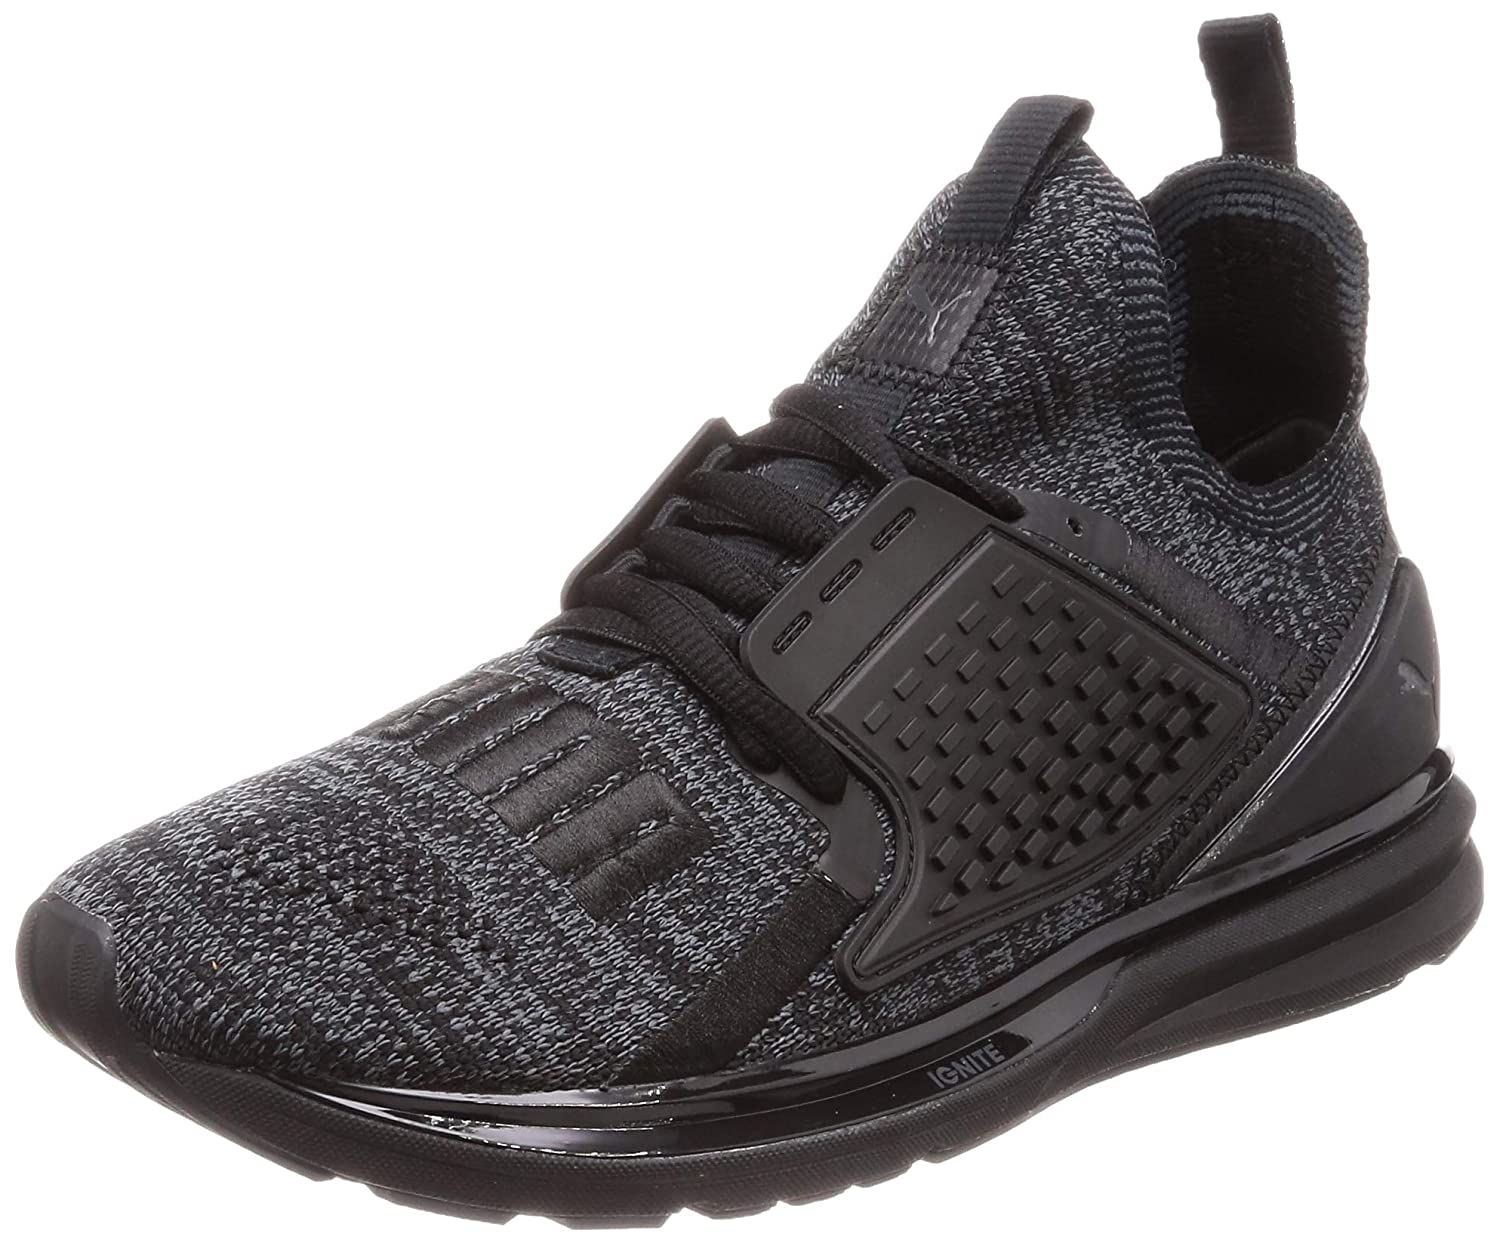 Puma Ignite Limitless 2 Evoknit Black  Buy Online at Low Prices in India -  Amazon.in 6d9eb53d1